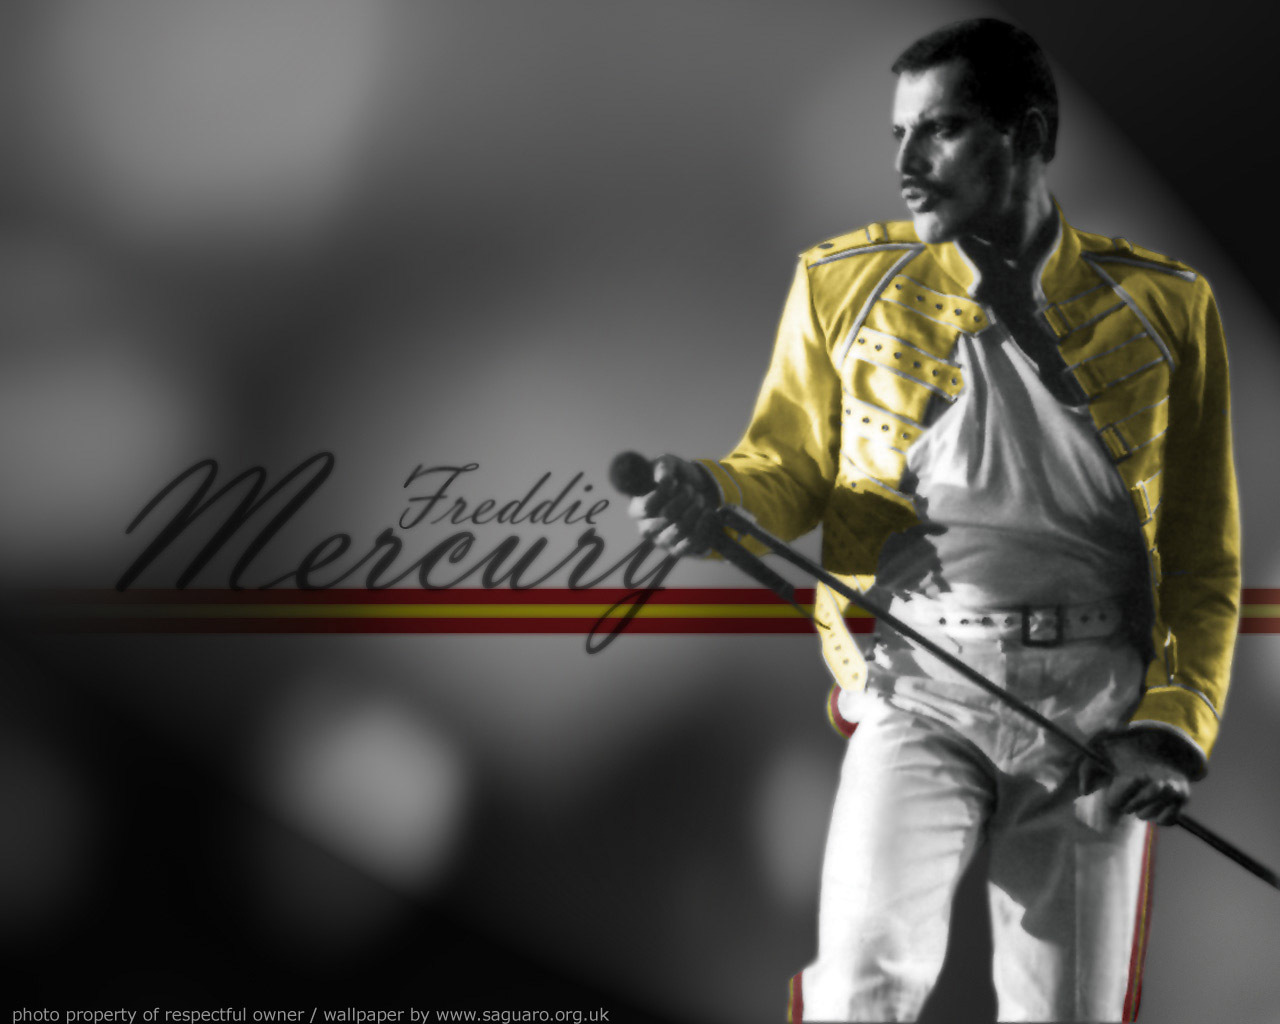 freddie mercury - photo #38